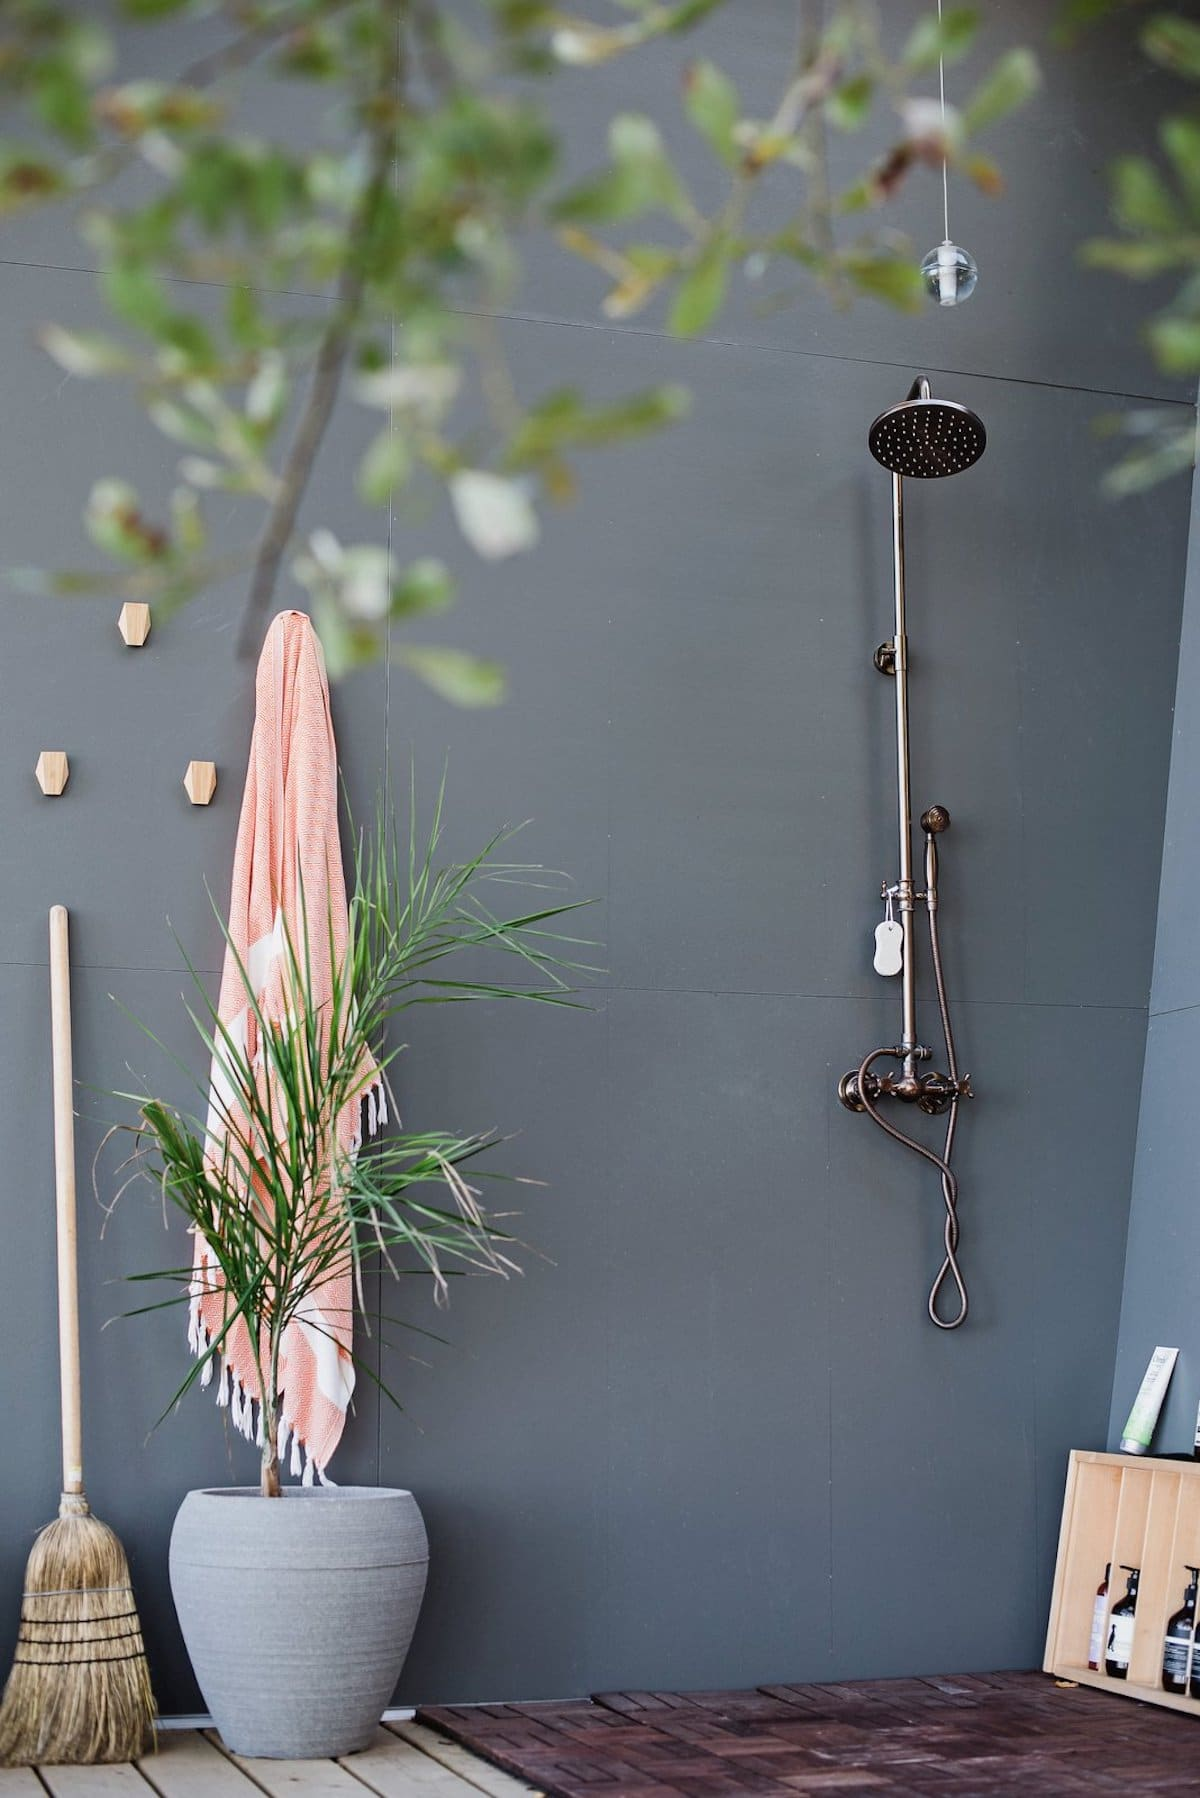 An outdoor shower is tucked away on one side of the patio and was one of the features requested by the owners